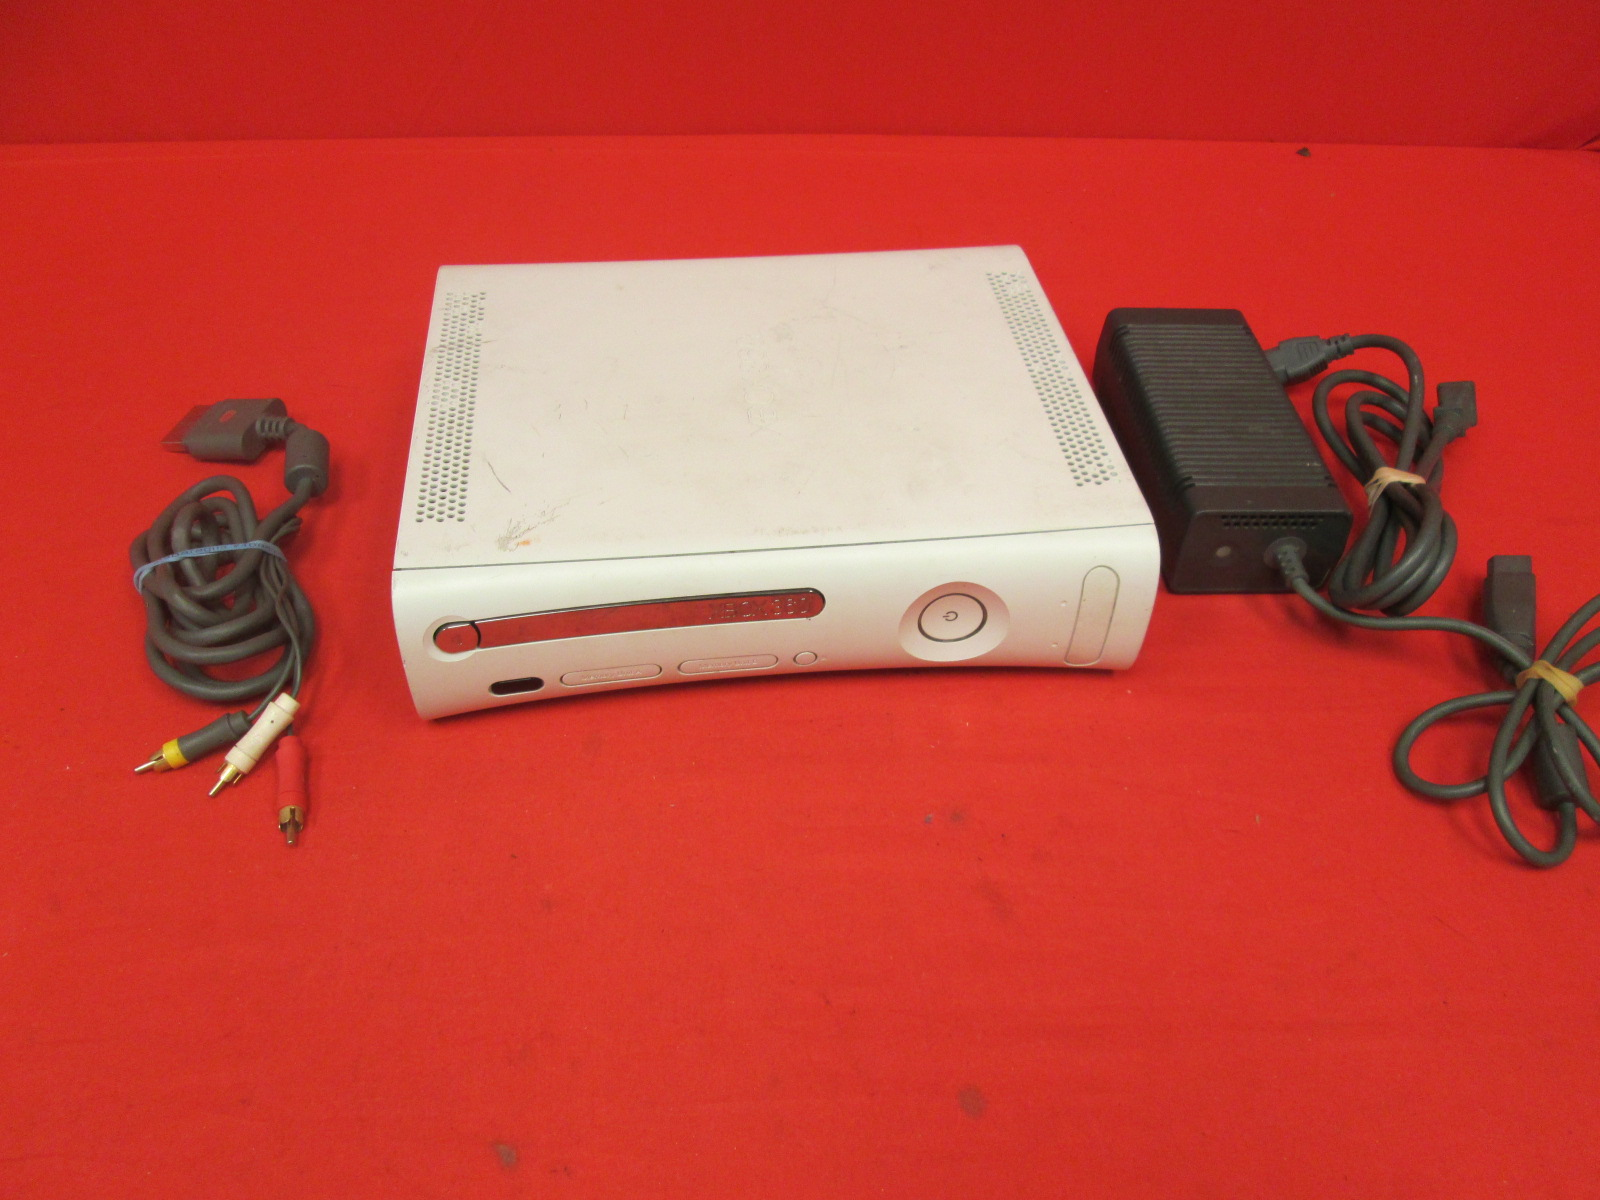 Microsoft Xbox 360 White HDMI Falcon Video Game Console